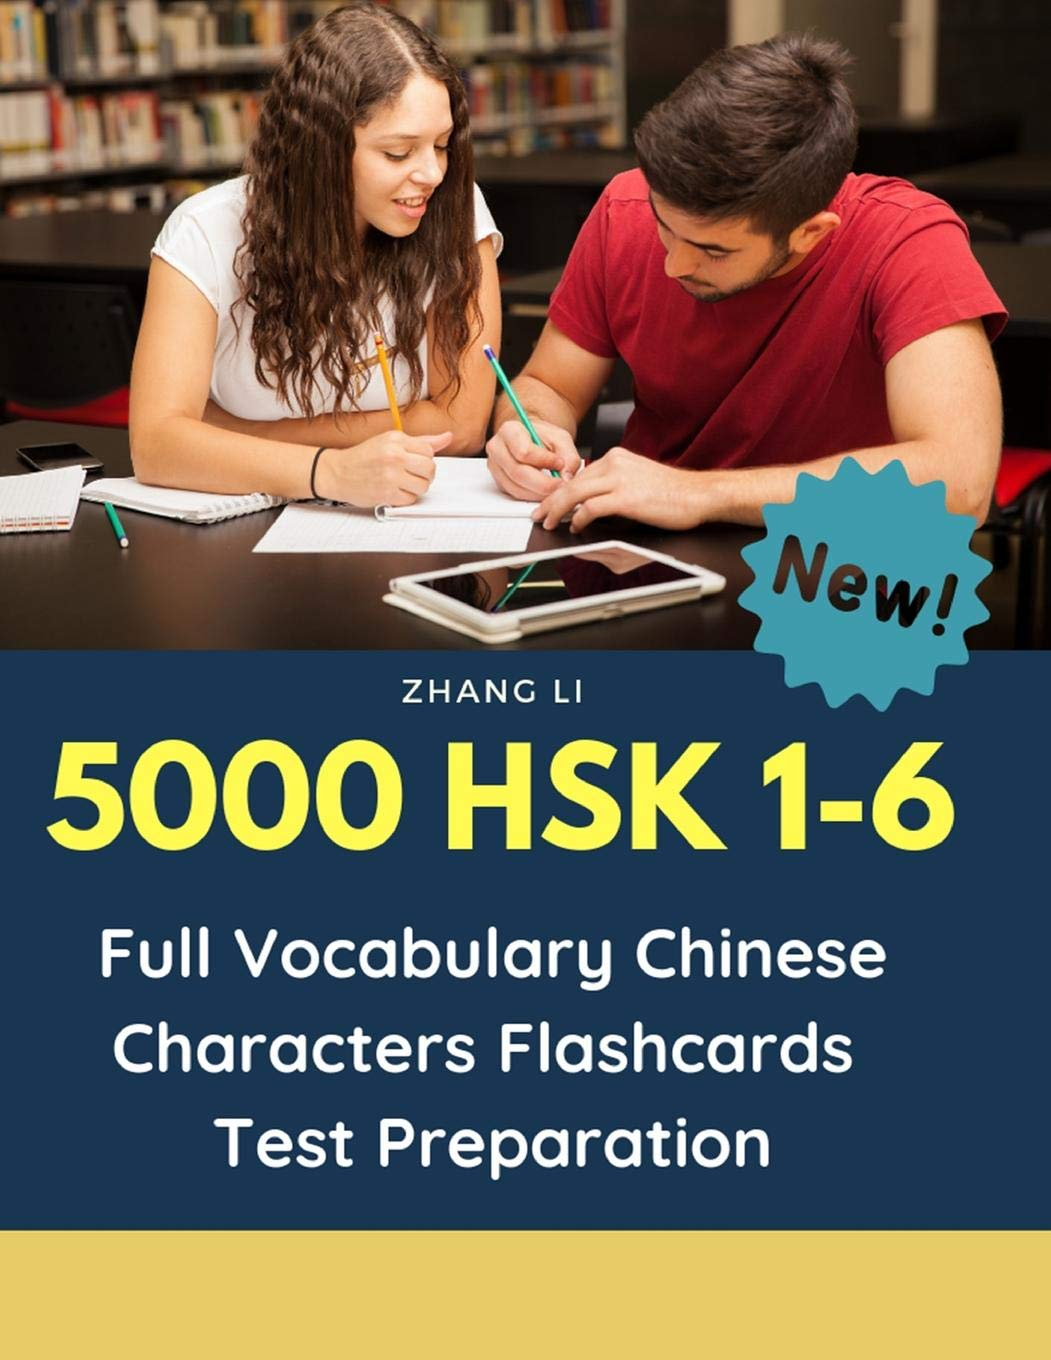 5000 HSK 1 6 Full Vocabulary Chinese Characters Flashcards Test Preparation  Practice Mandarin Chinese Dictionary Guide Books Complete Words Reader ... 123456 To Prepare For Real Test Exam.